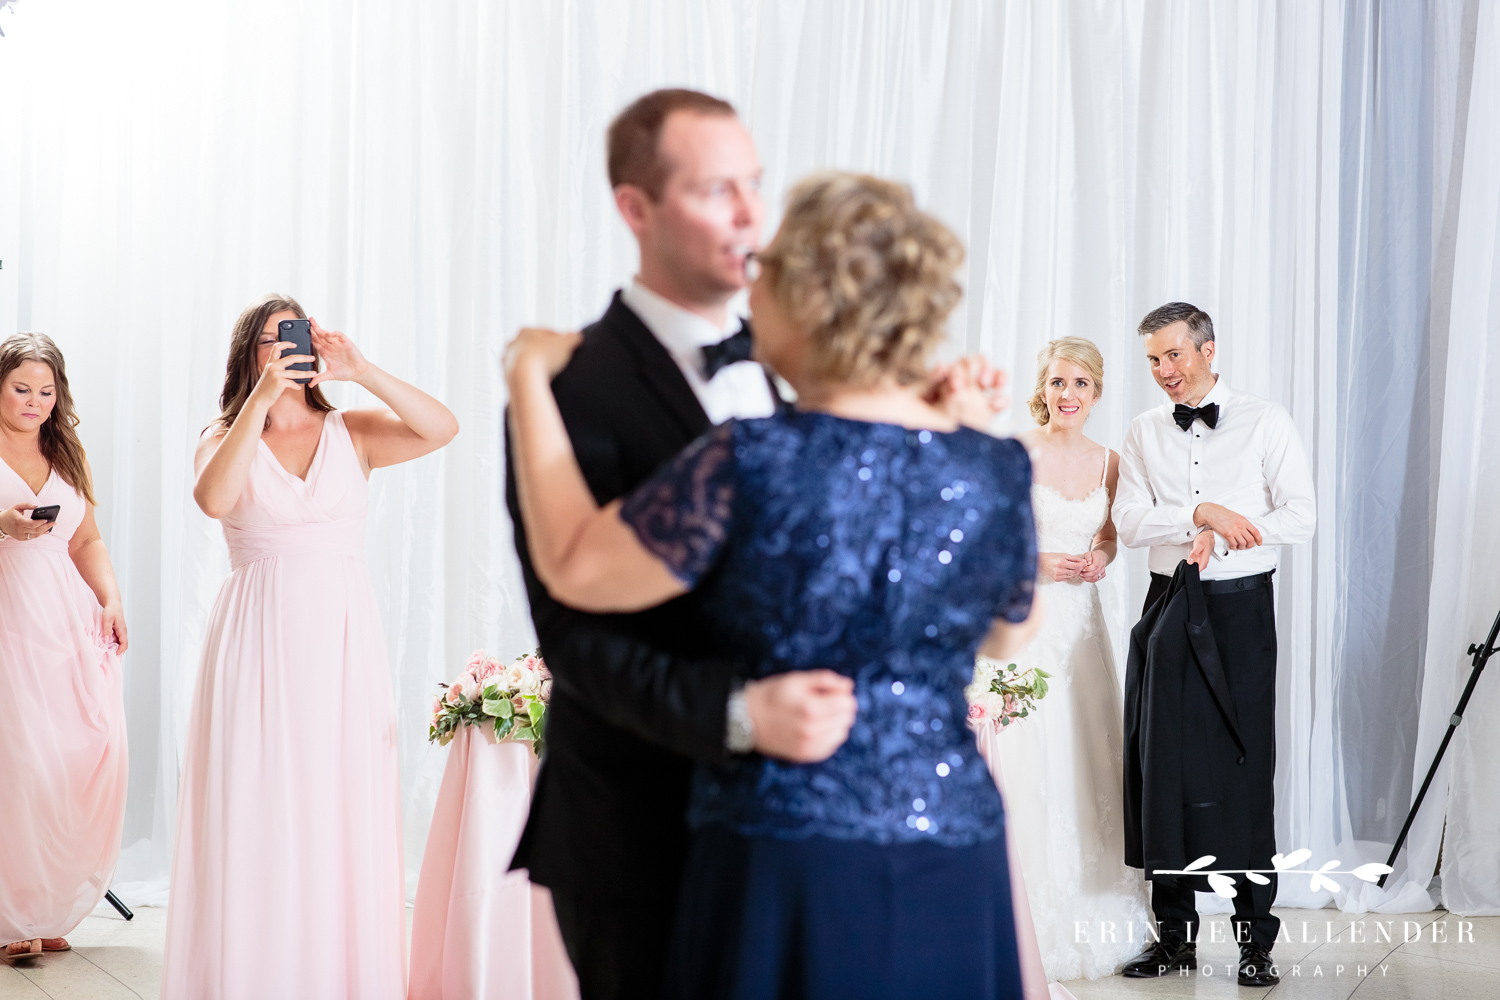 Bride_Watches_Groom_Dance_With_Mom